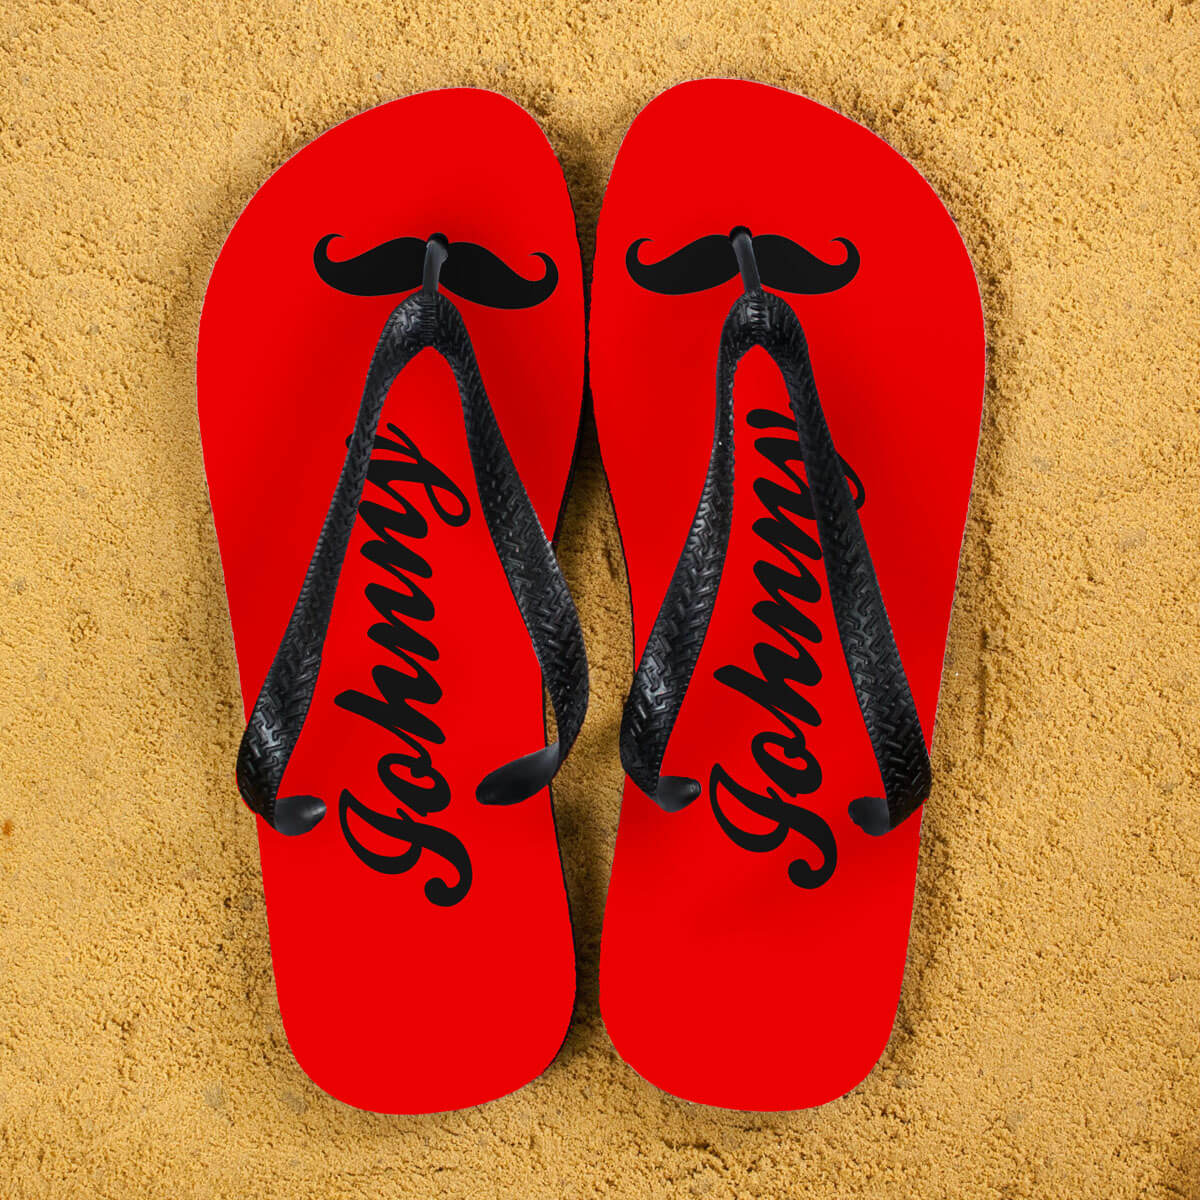 Personalised Adults Flip Flops (Red & Black) – Moustache